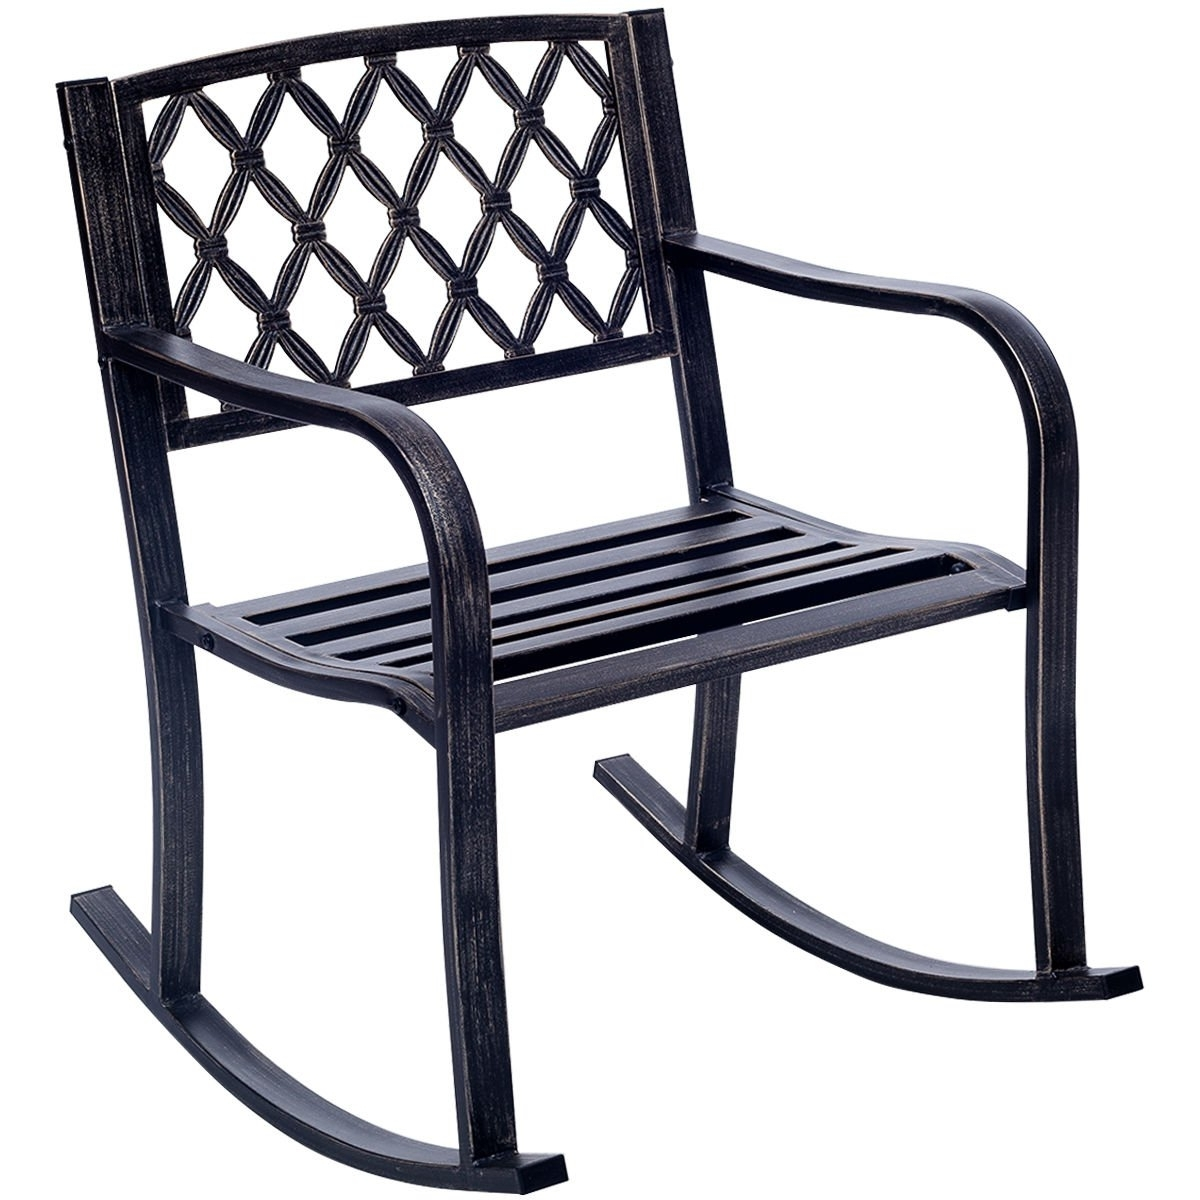 Giantex Patio Metal Rocking Chair Porch Seat Deck Outdoor Backyard Inside Latest Patio Metal Rocking Chairs (Gallery 6 of 15)